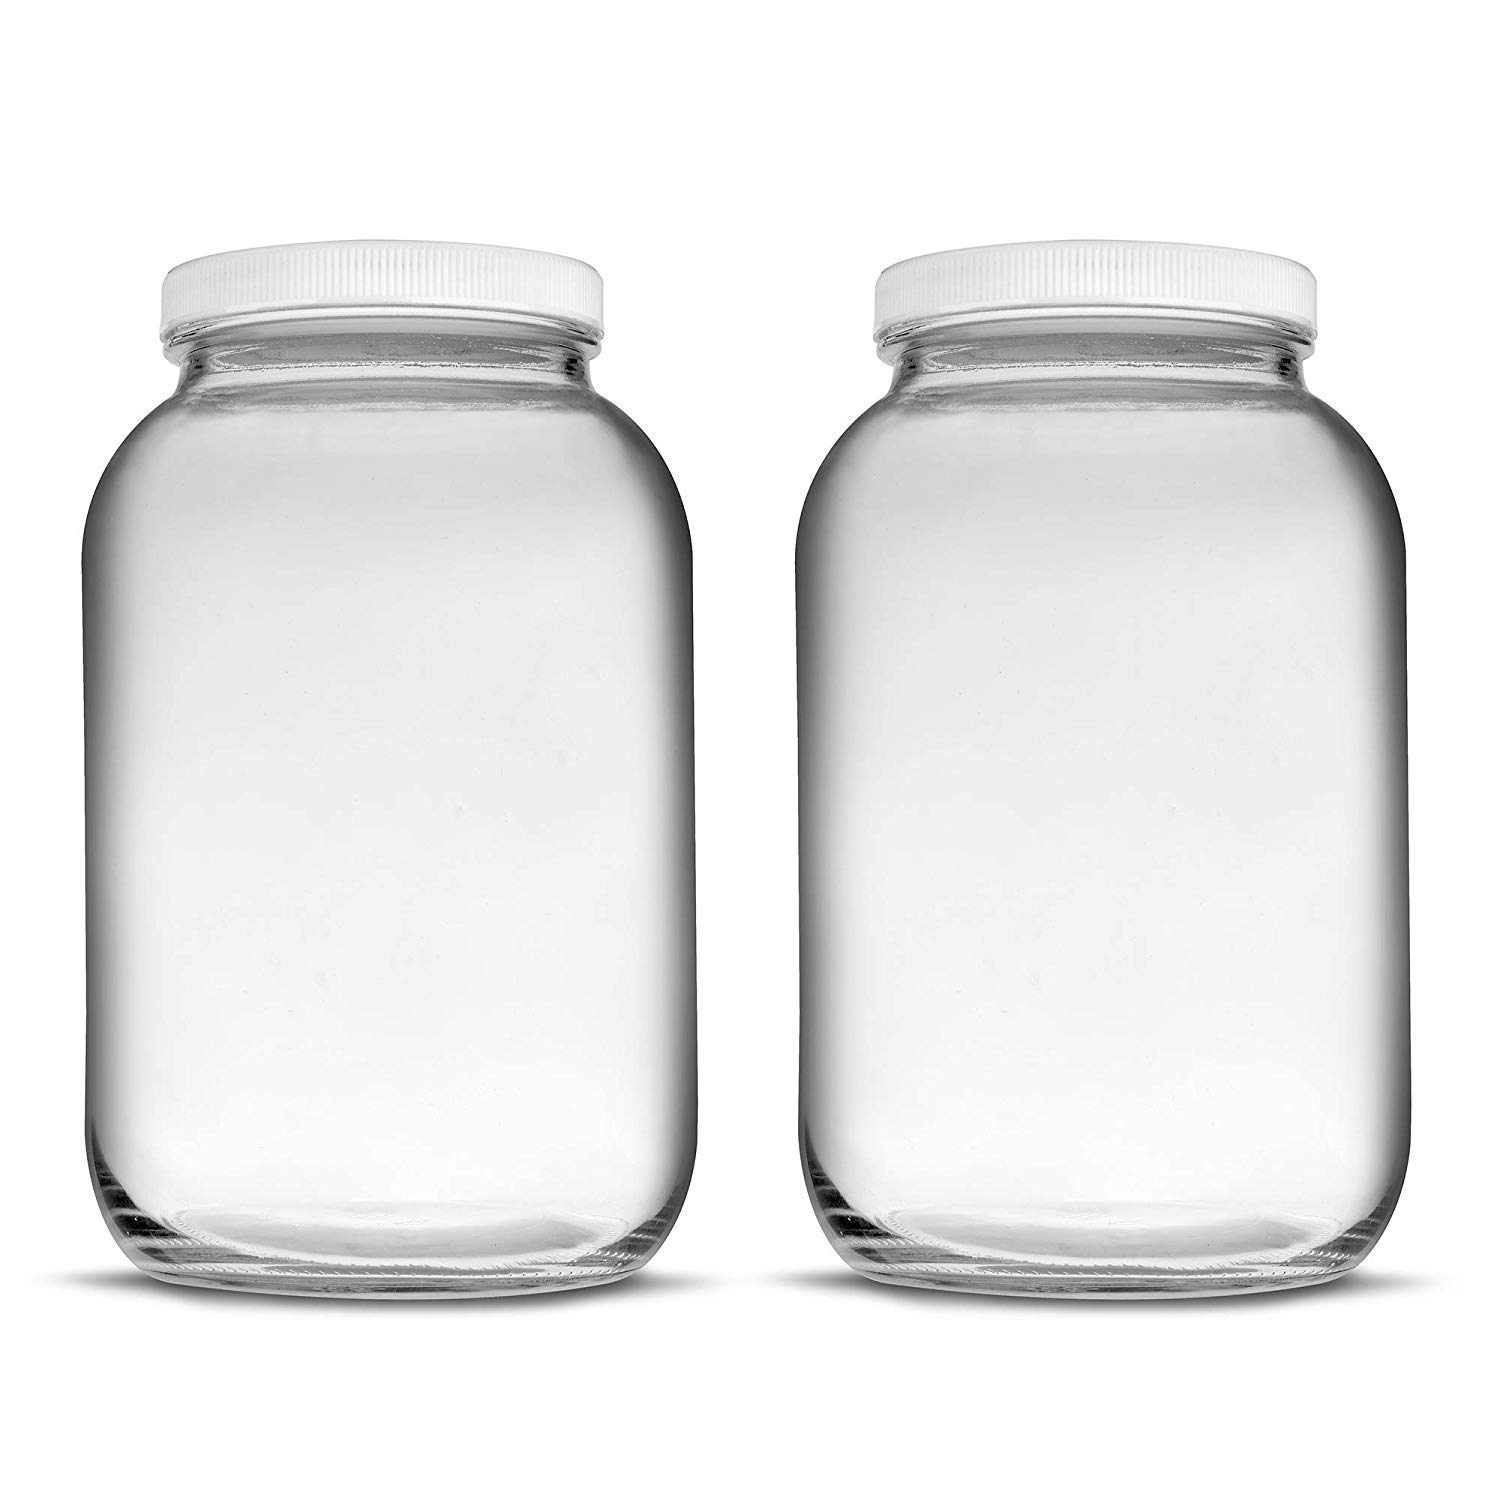 Teikis 2 Pack Wide-Mouth 1 Gallon Glass Jar with 4